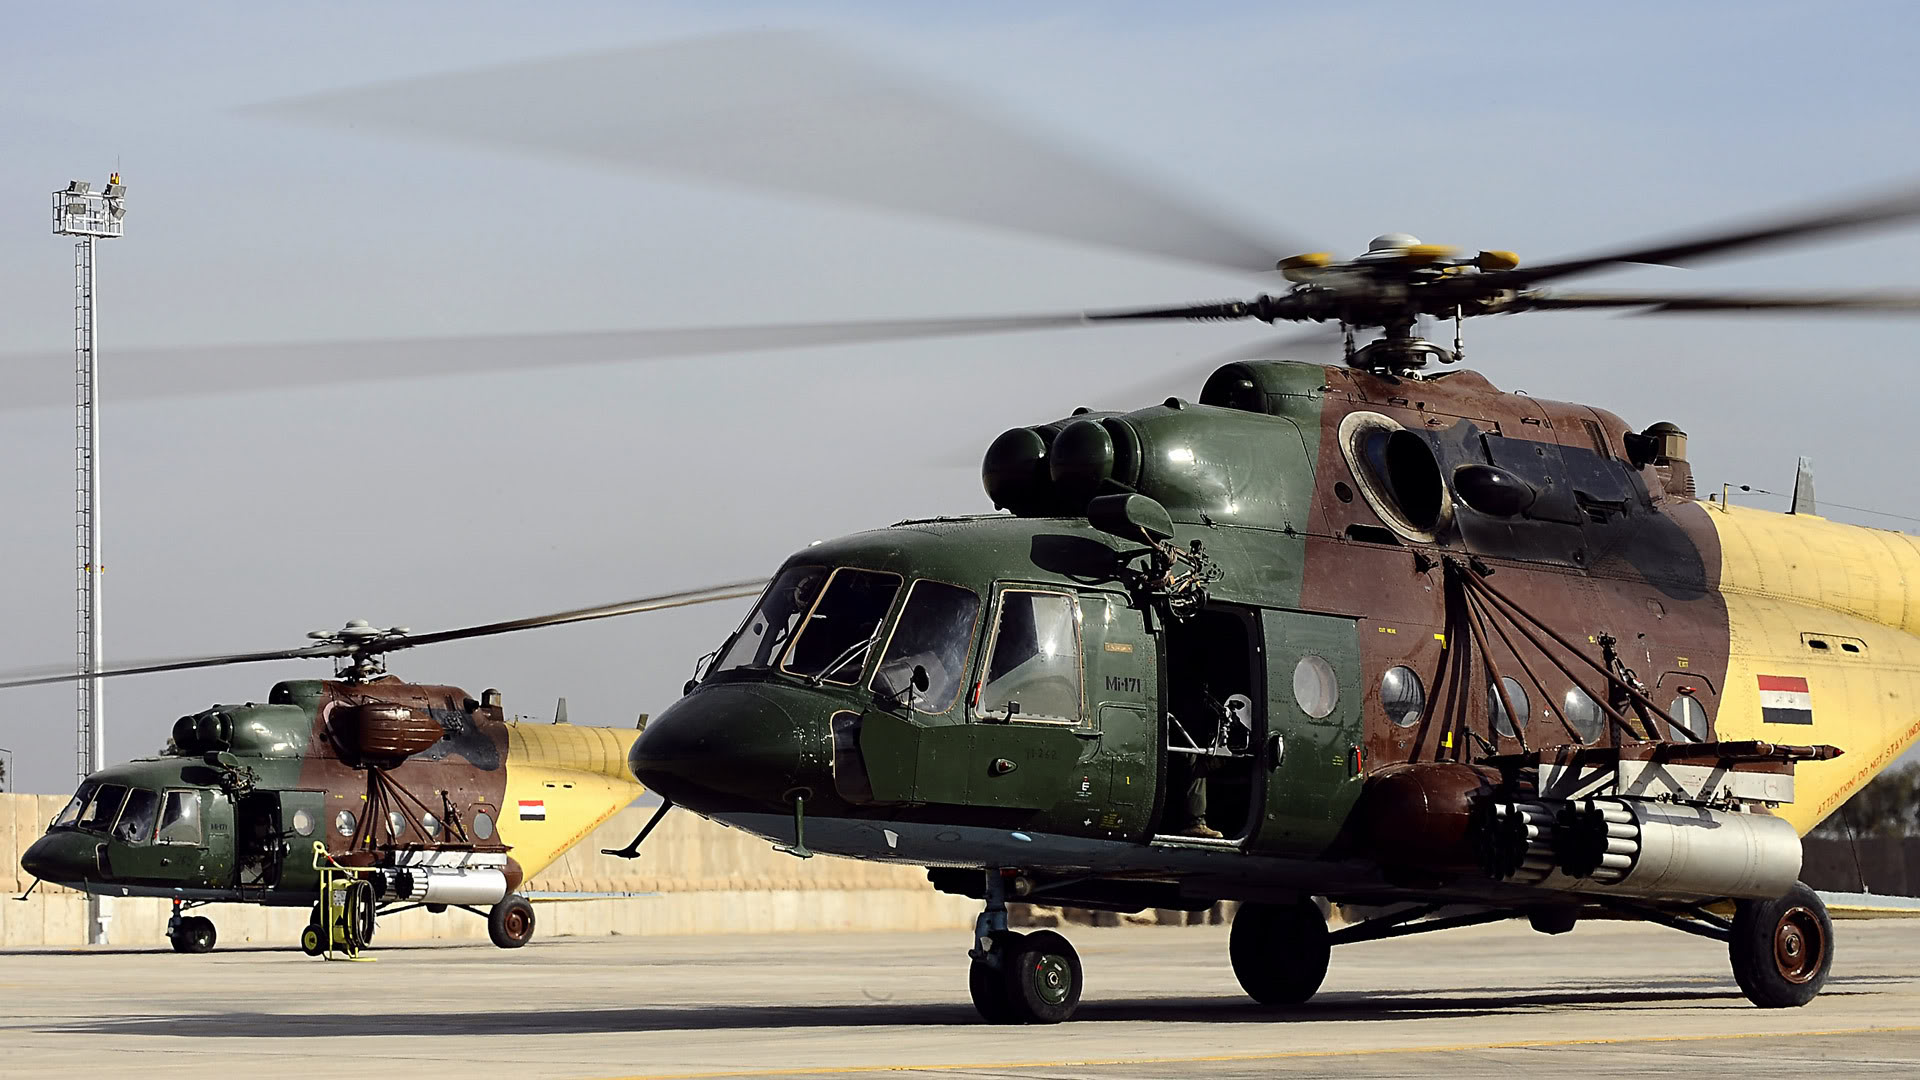 mi 17 helicopters with By Sub Category on Open photo likewise Open photo additionally Open photo as well File Mil Mi 10 Harke  ex 44 white   9765227226 likewise Ch 47f Chinook.